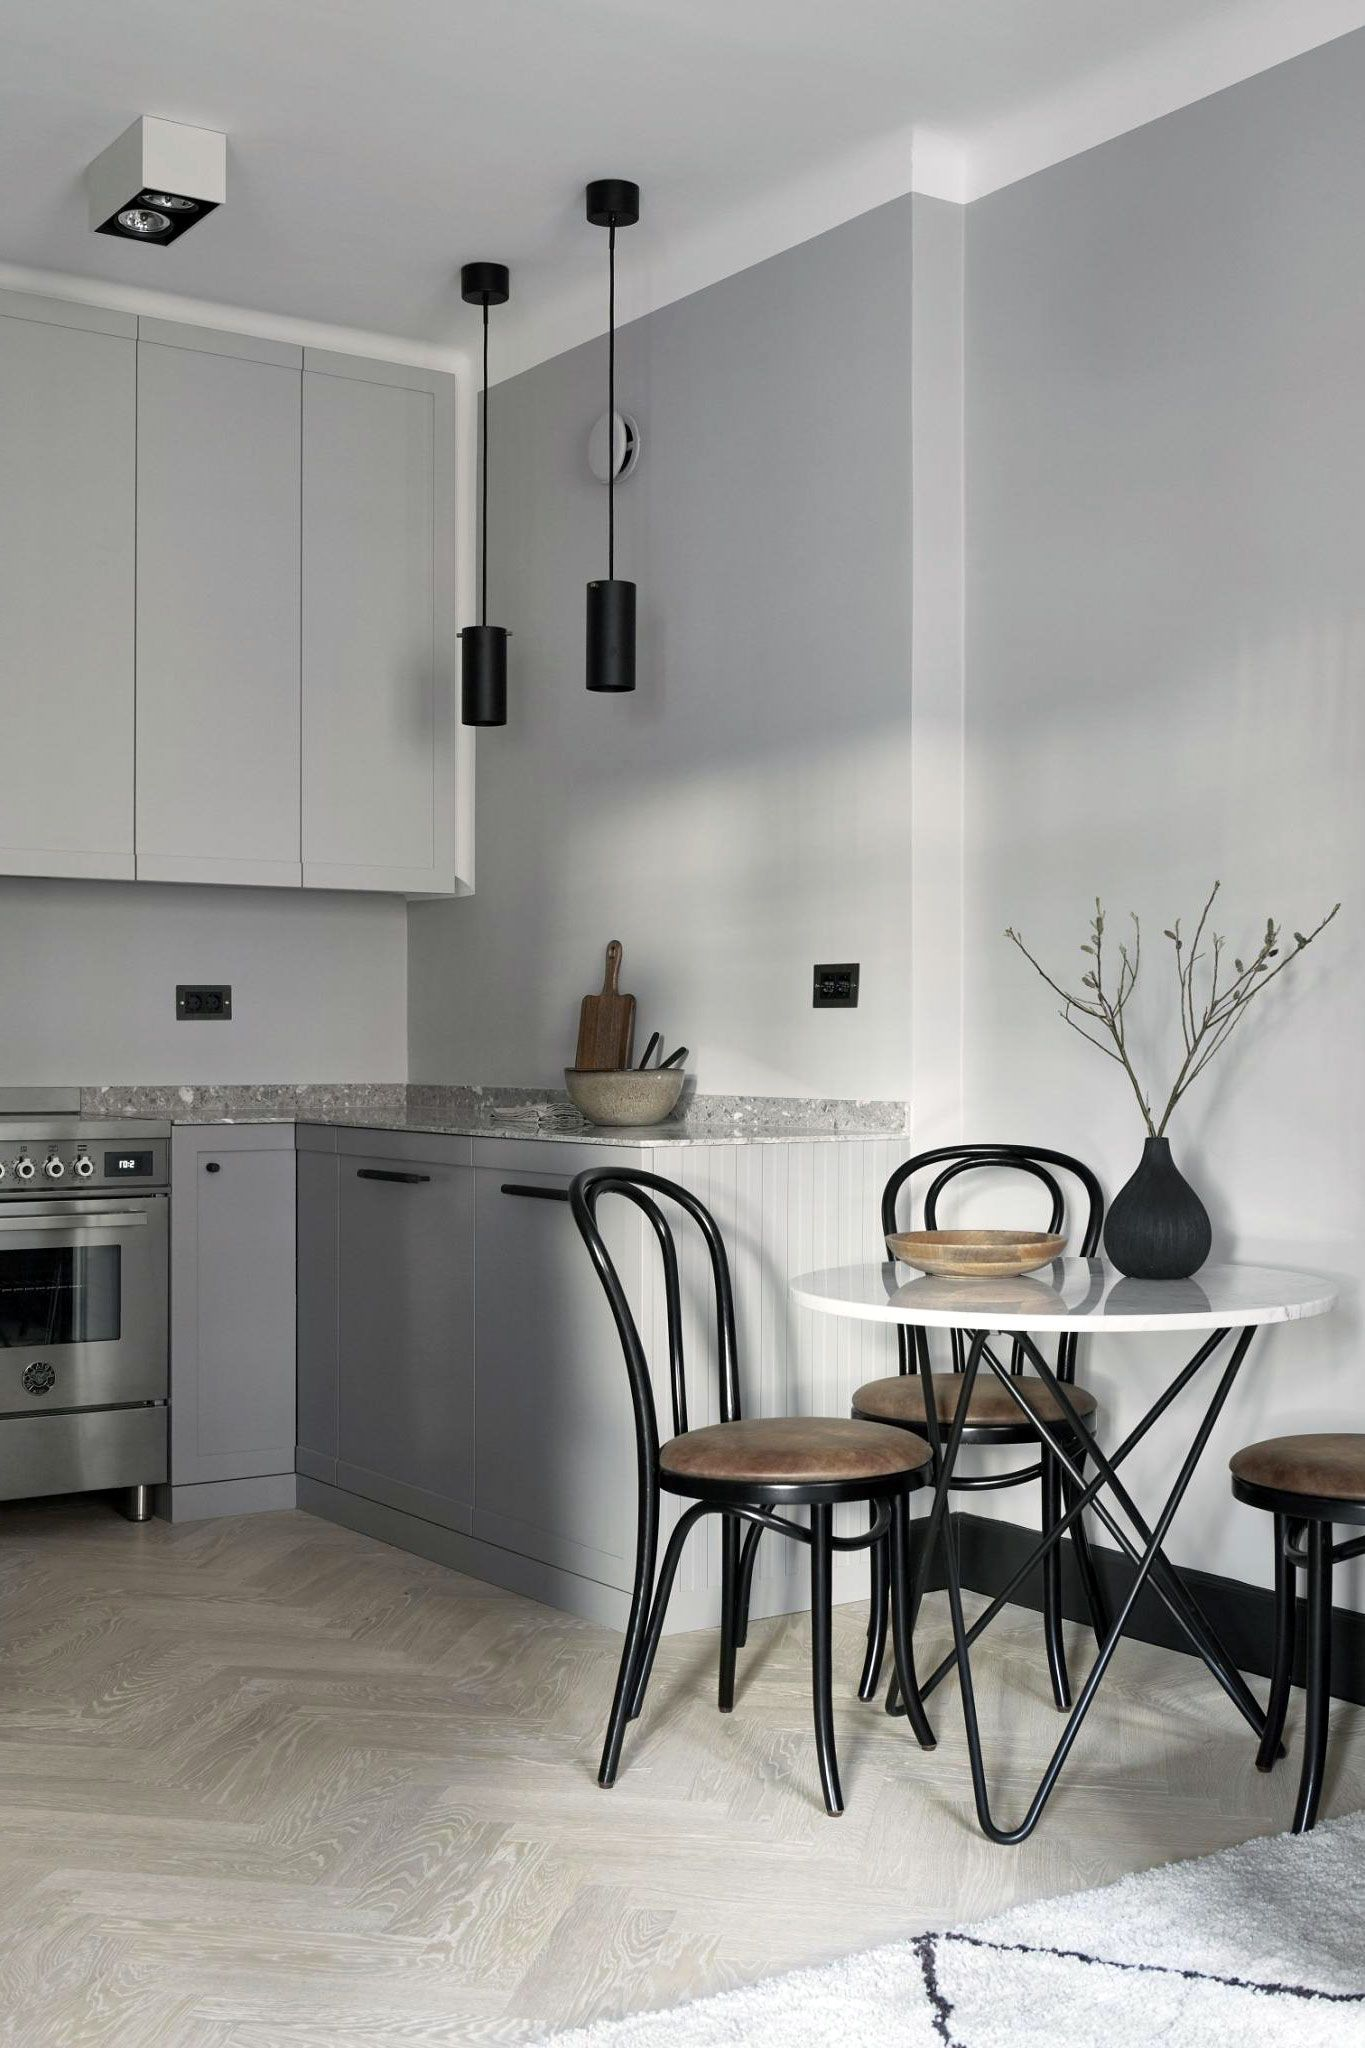 26 Gorgeous Scandinavian Kitchen With Grey Color Ideas In 2020 Scandinavian Kitchen Design Scandinavian Kitchen Kitchen Design Decor